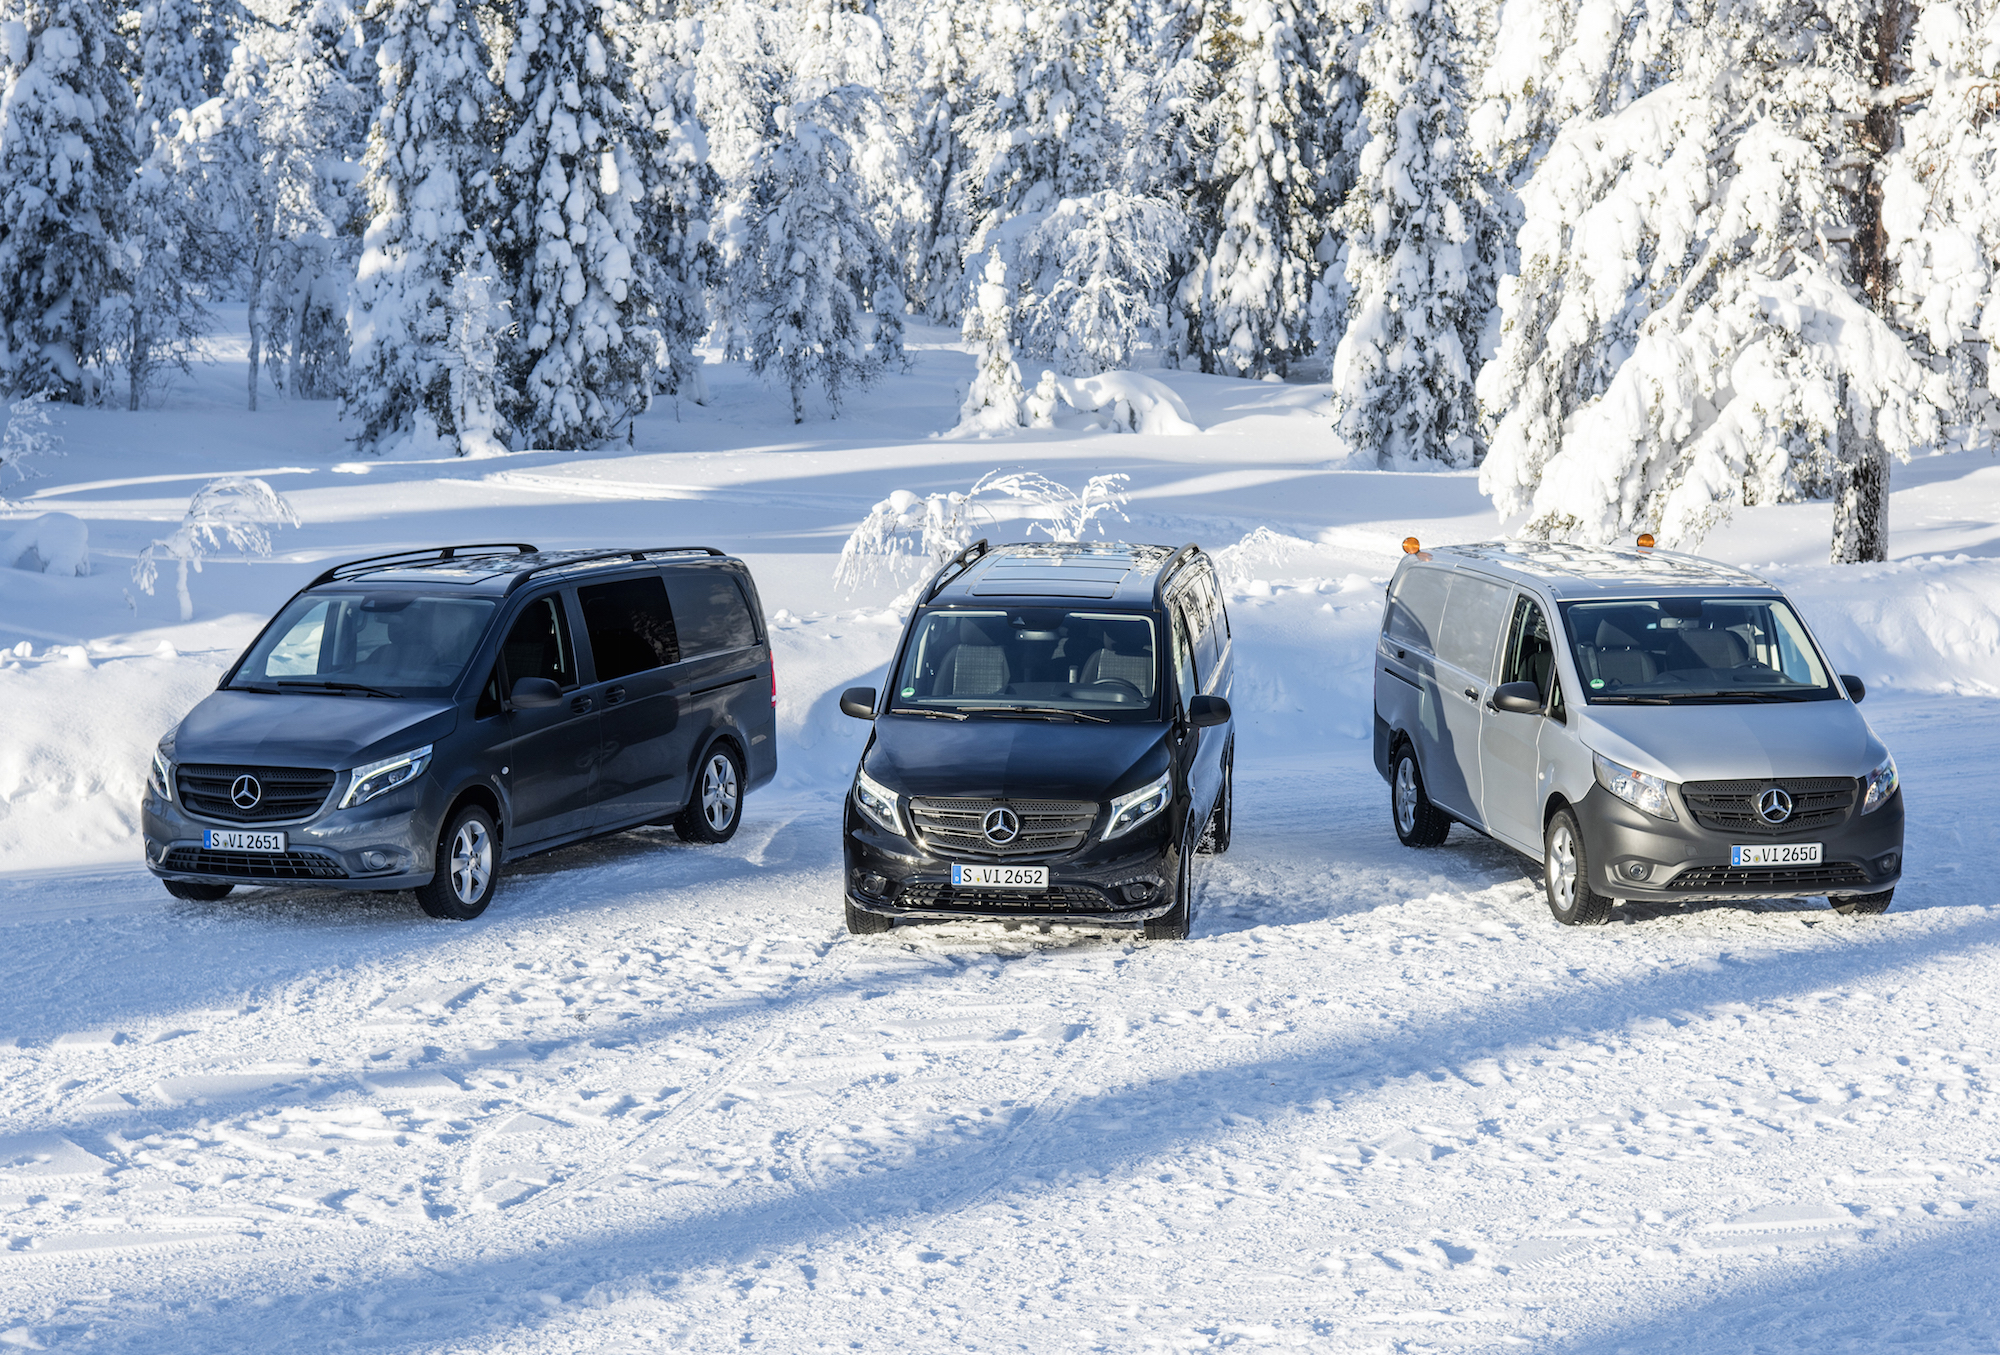 Vito 4x4 driving experience Sweden, Vito 4x4, Mercedes-Benz Vito 119 BlueTEC ,Mixto, flint grey metallic, exterior Mercedes-Benz Vito Tourer PRO 119 BlueTEC, obsidian black metallic, exterior Mercedes-Benz Vito 119 BlueTEC ,Panel Van, brilliant silver metallic exterior